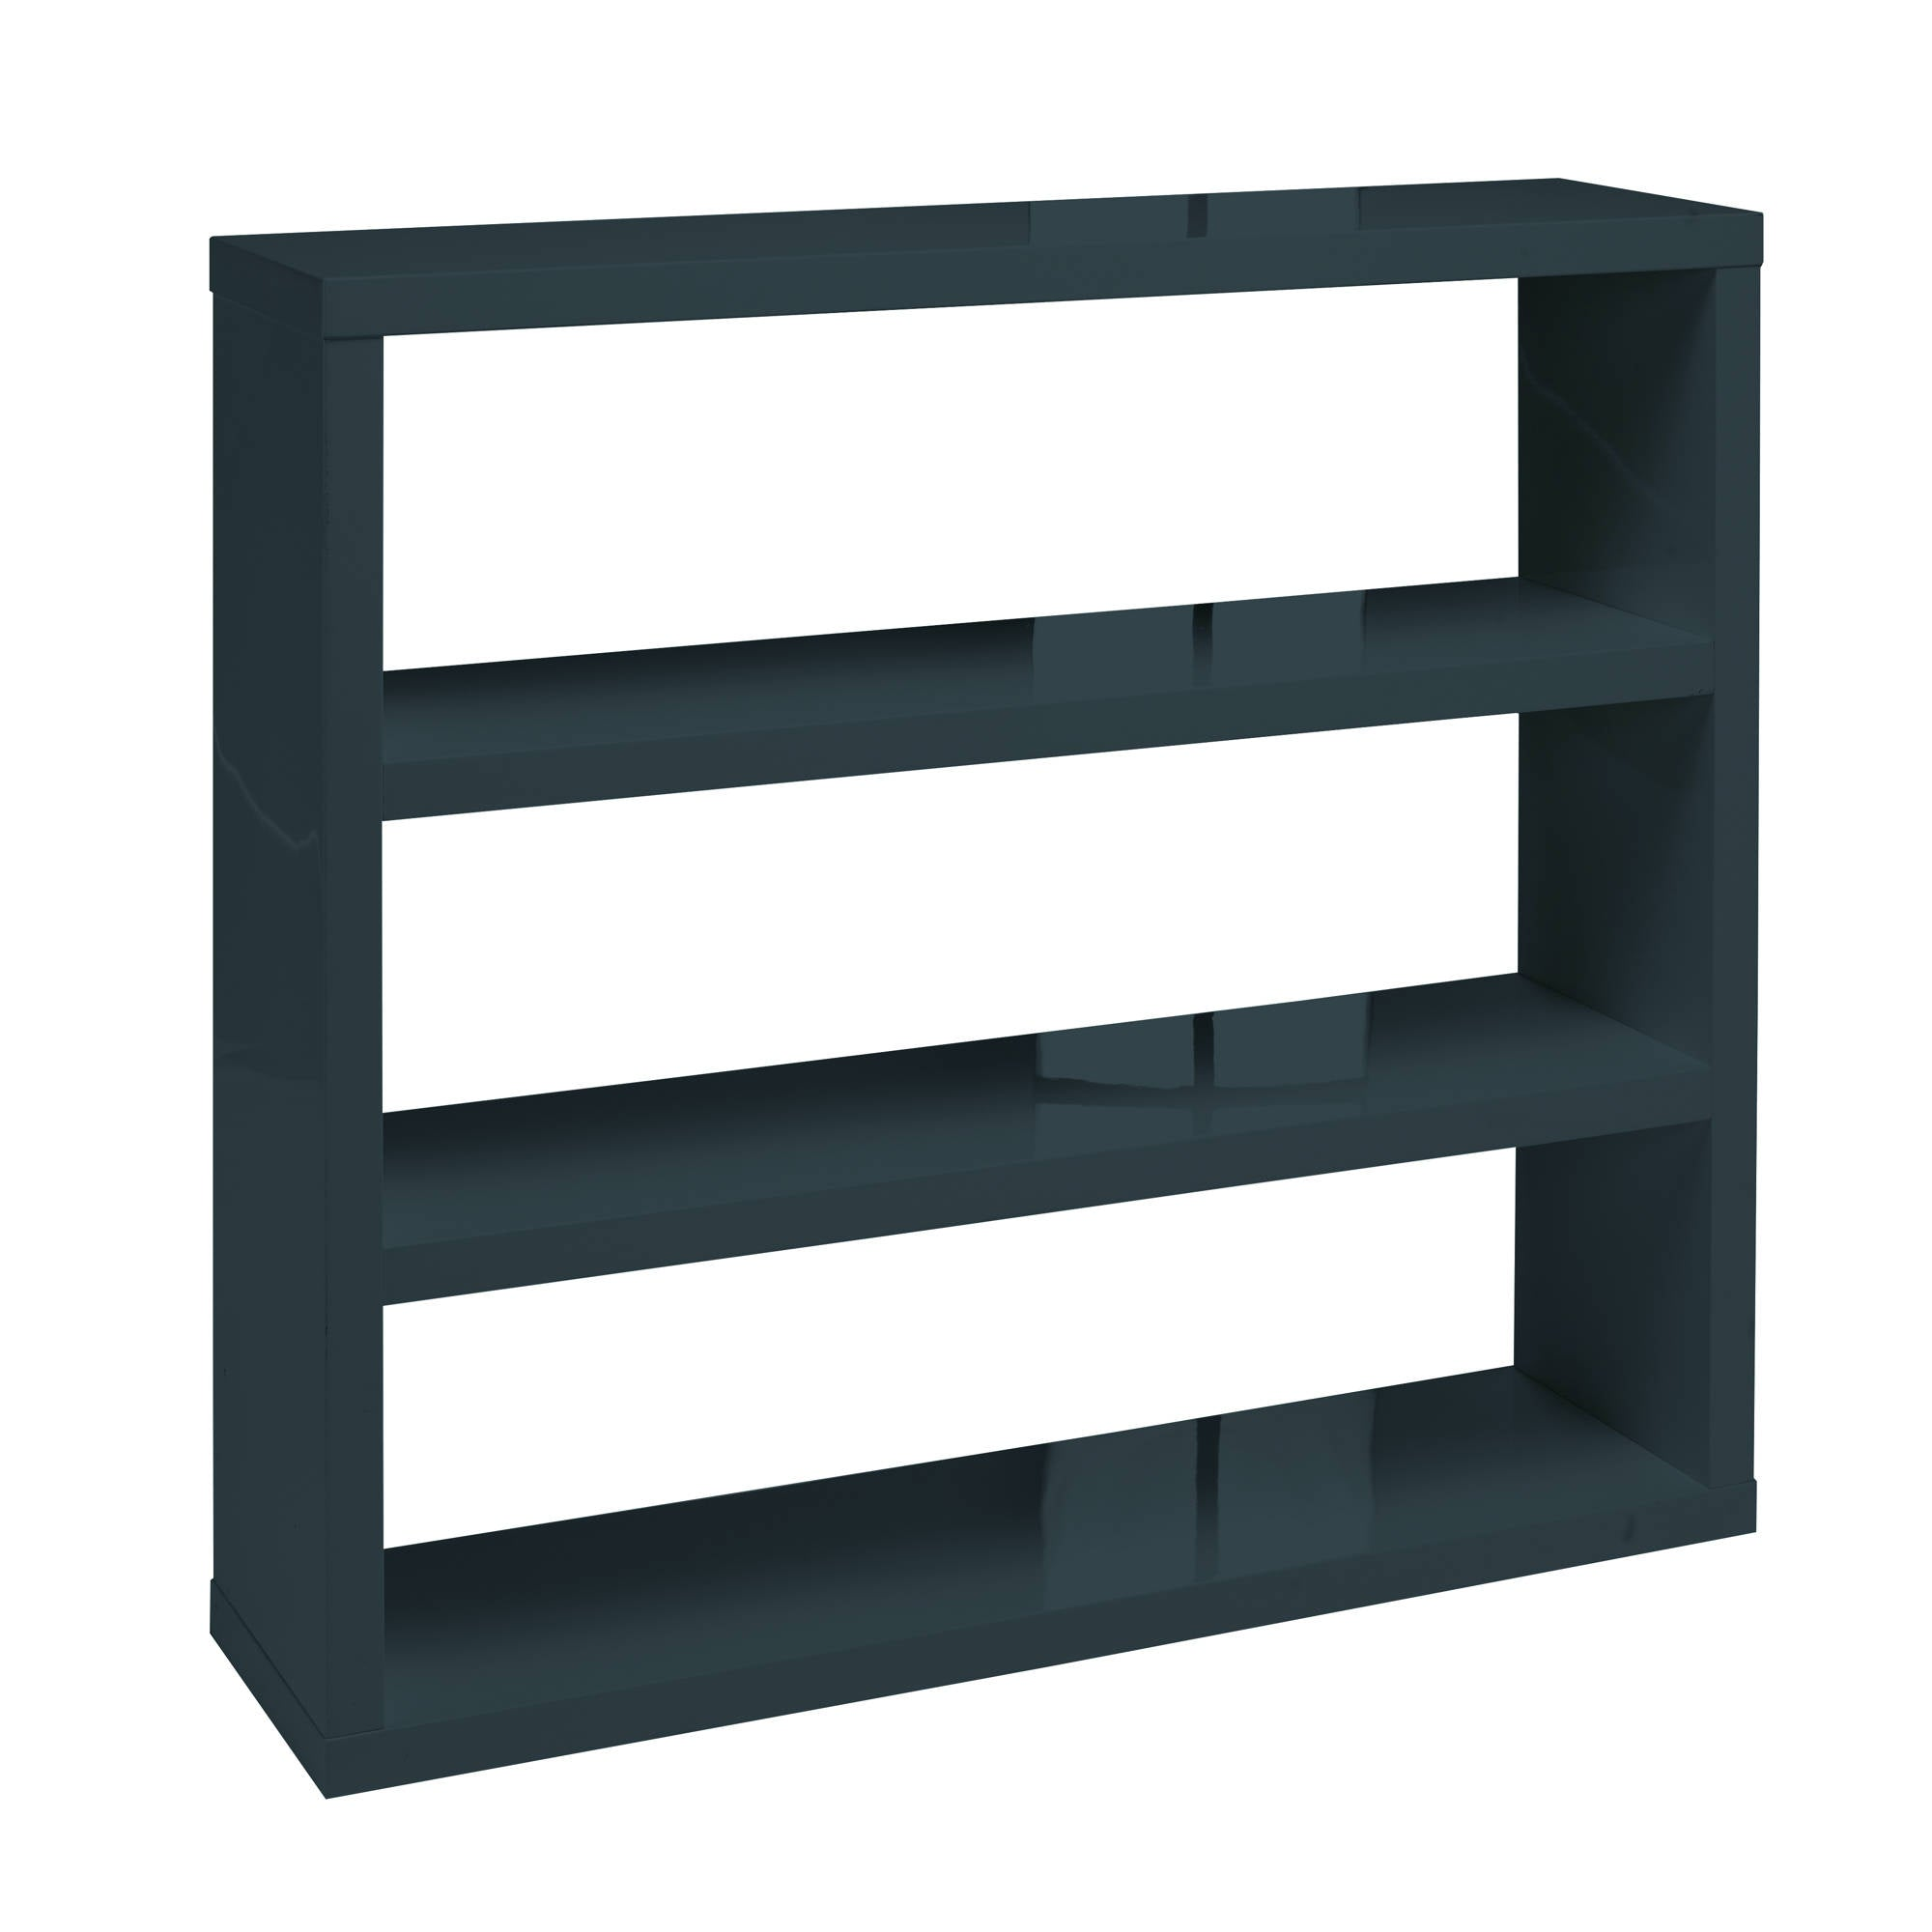 Sterling Bookcase in Charcoal - Ezzo